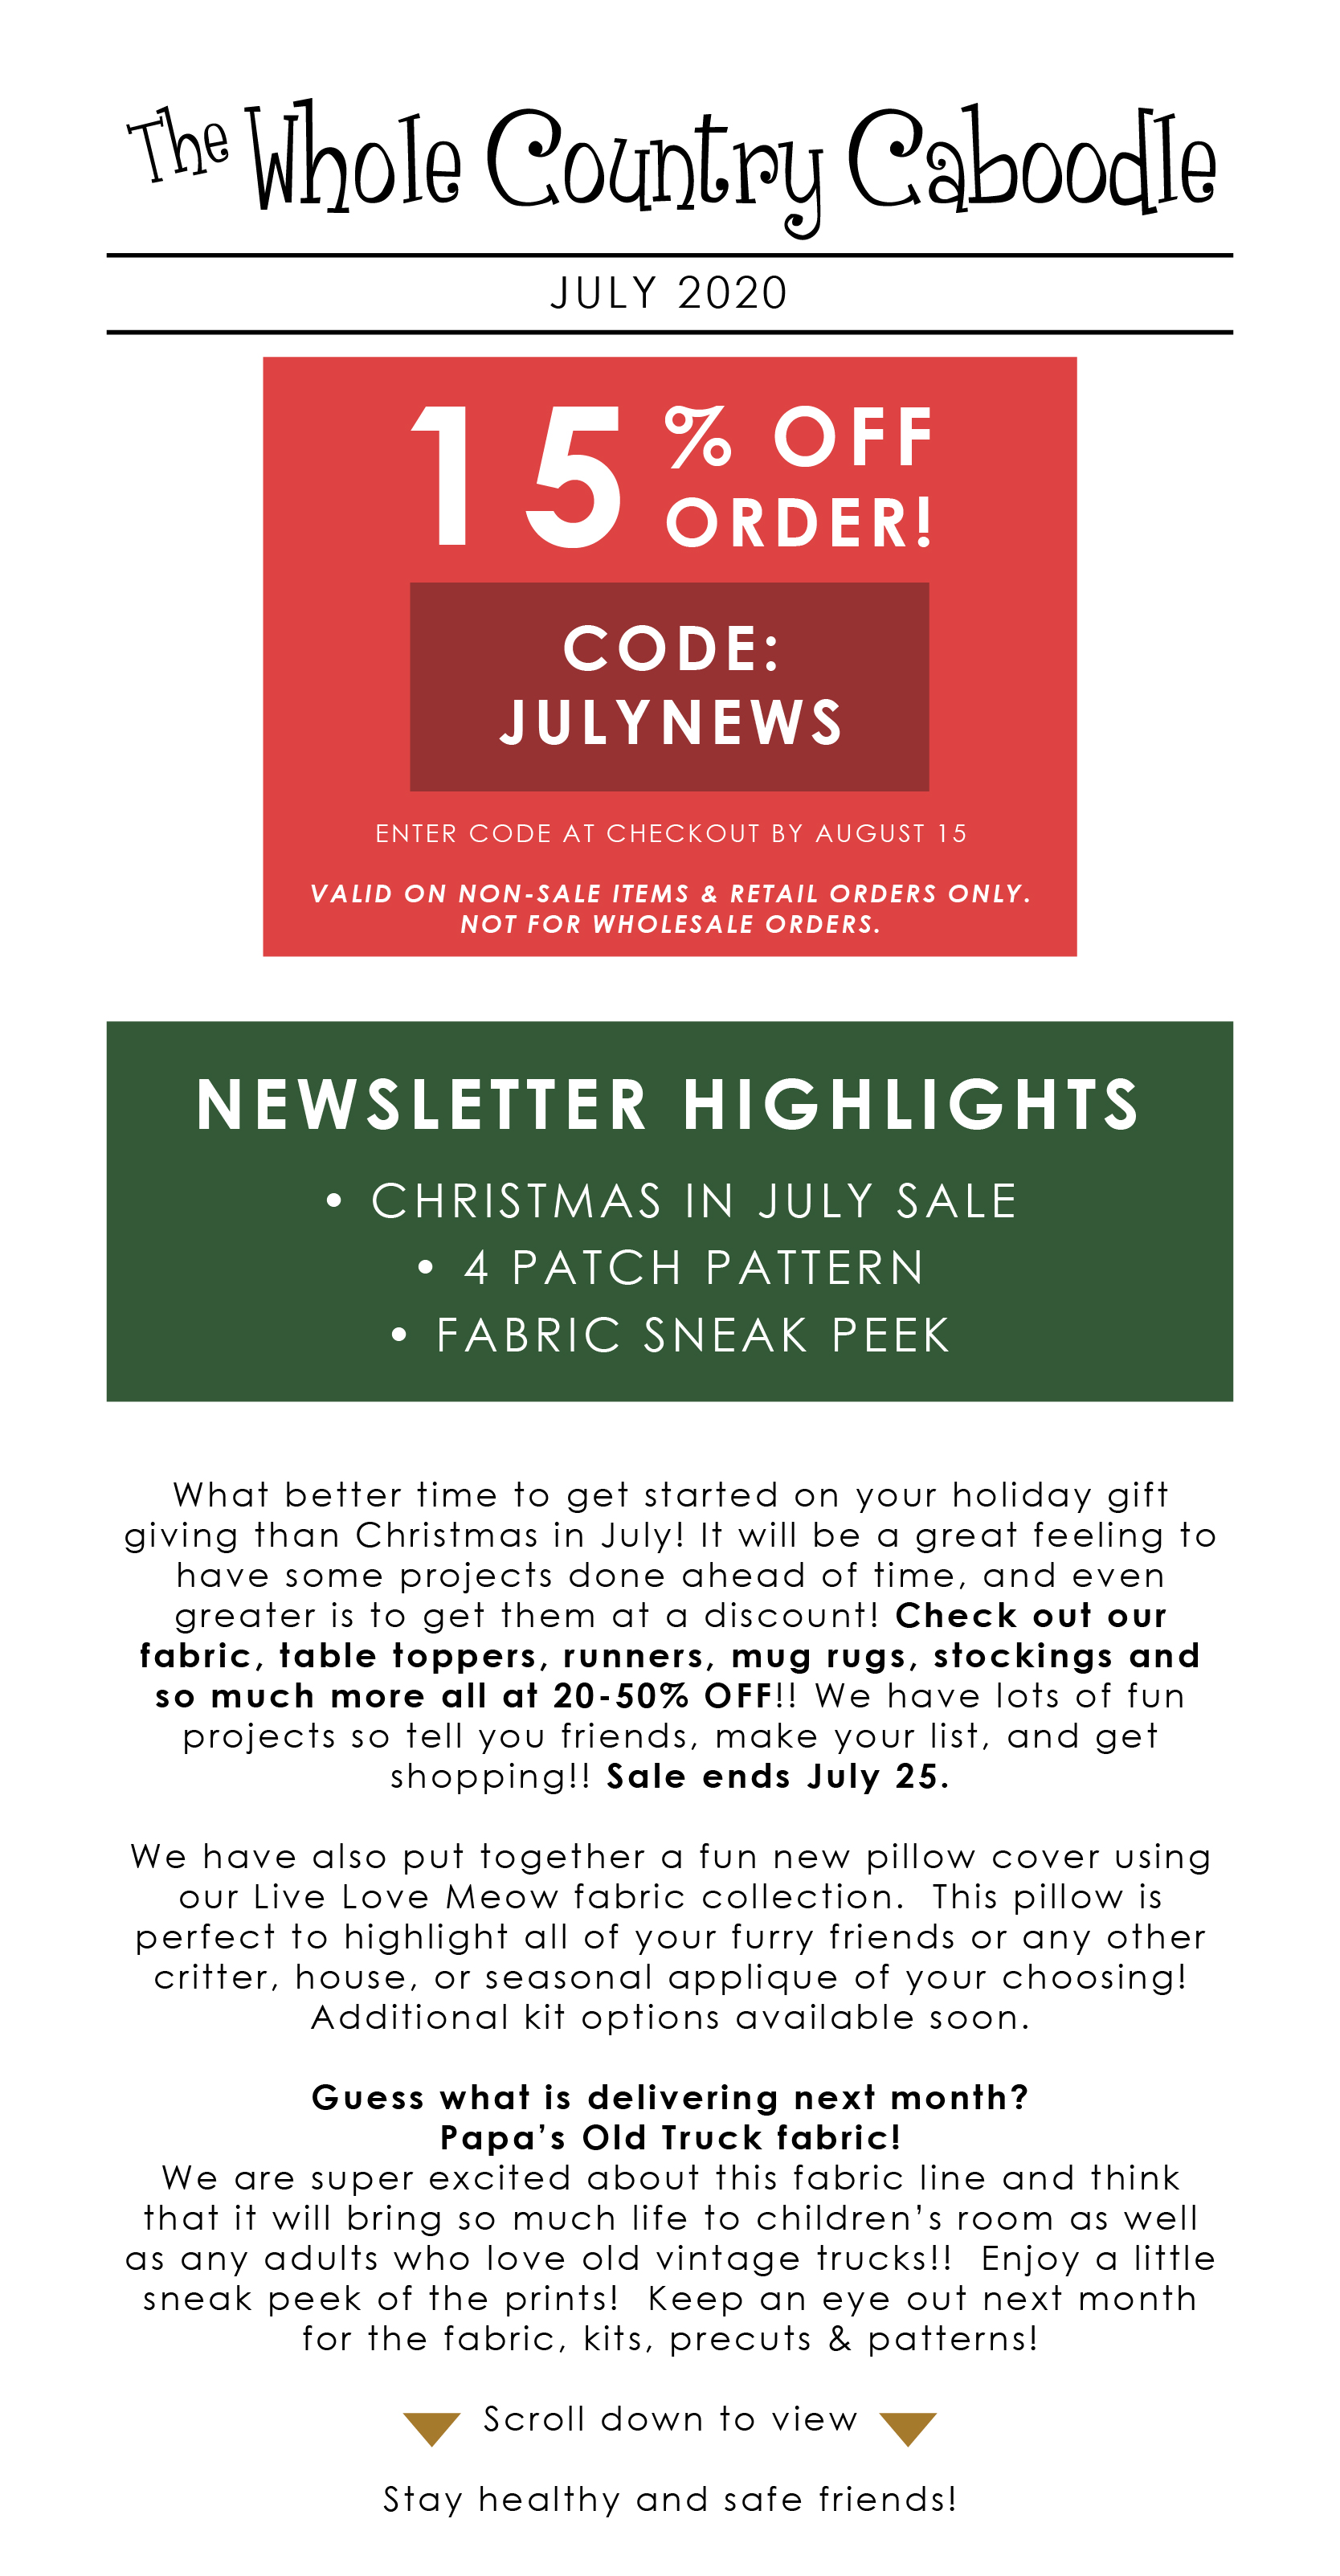 """What better time to get started on your holiday gift giving than """"Christmas in July!"""" It will be a great feeling to have some projects done ahead of time, and even greater is to get them at a discount!"""